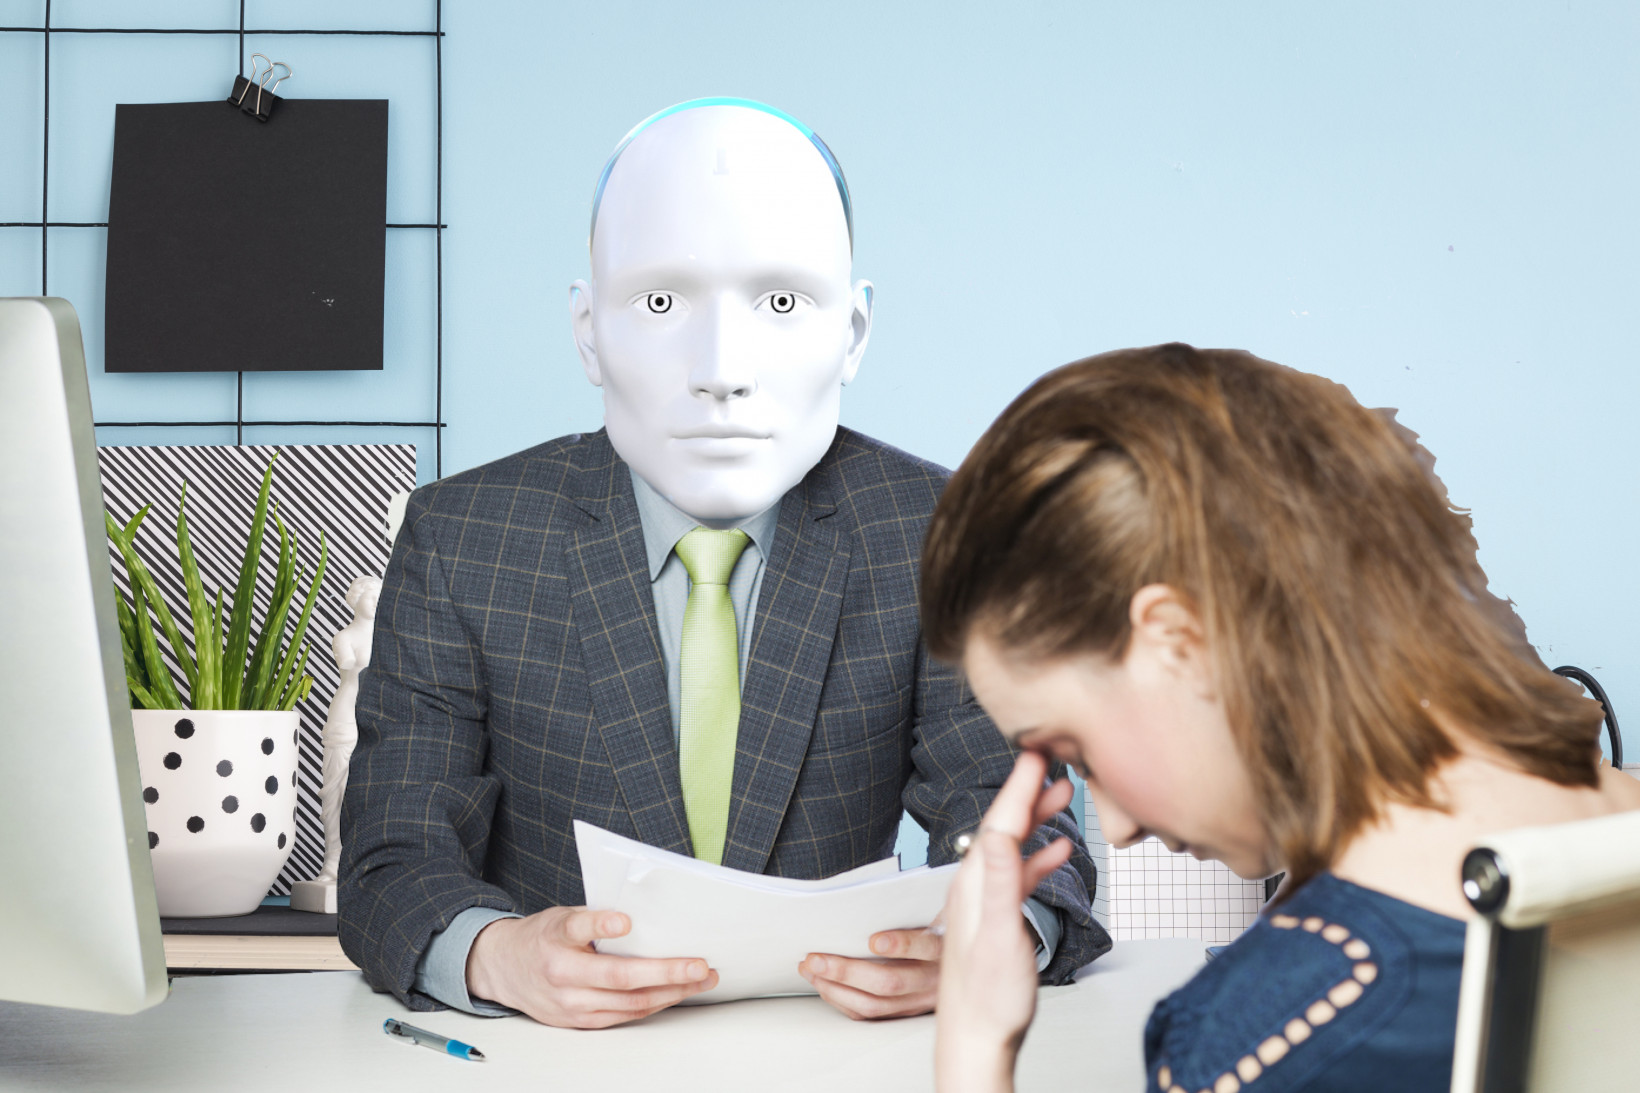 Robots reviewed my resume and they were not impressed